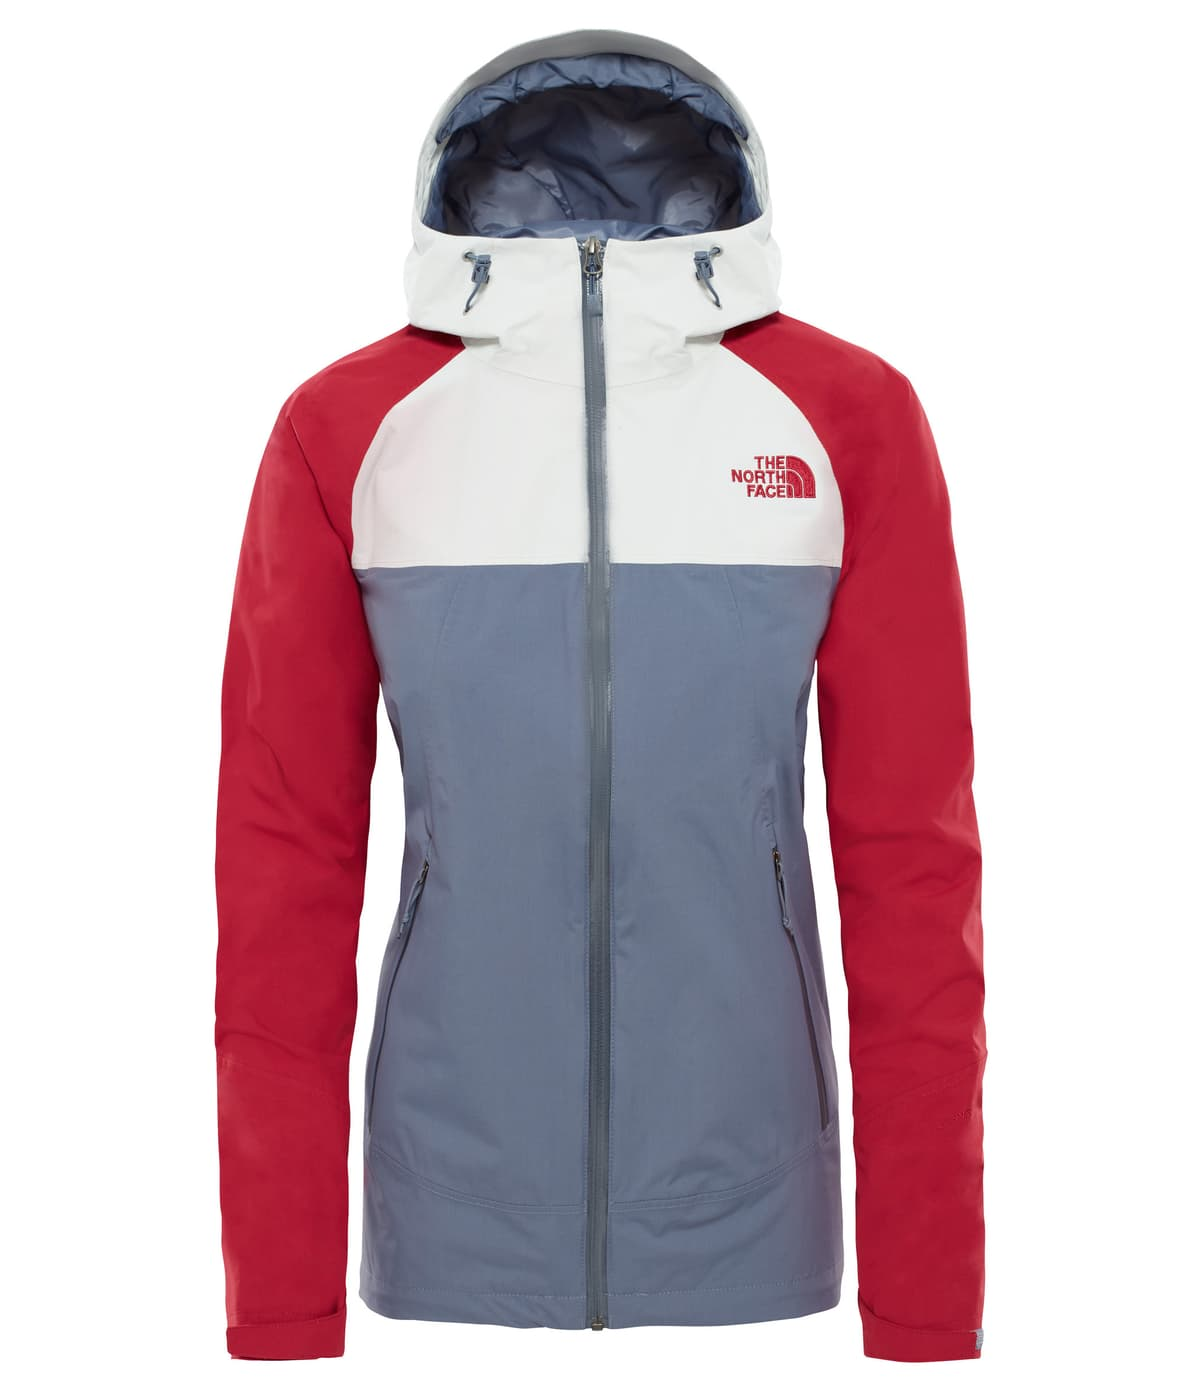 c1c41fa5c4 The North Face Stratos Veste de trekking pour femme | Migros